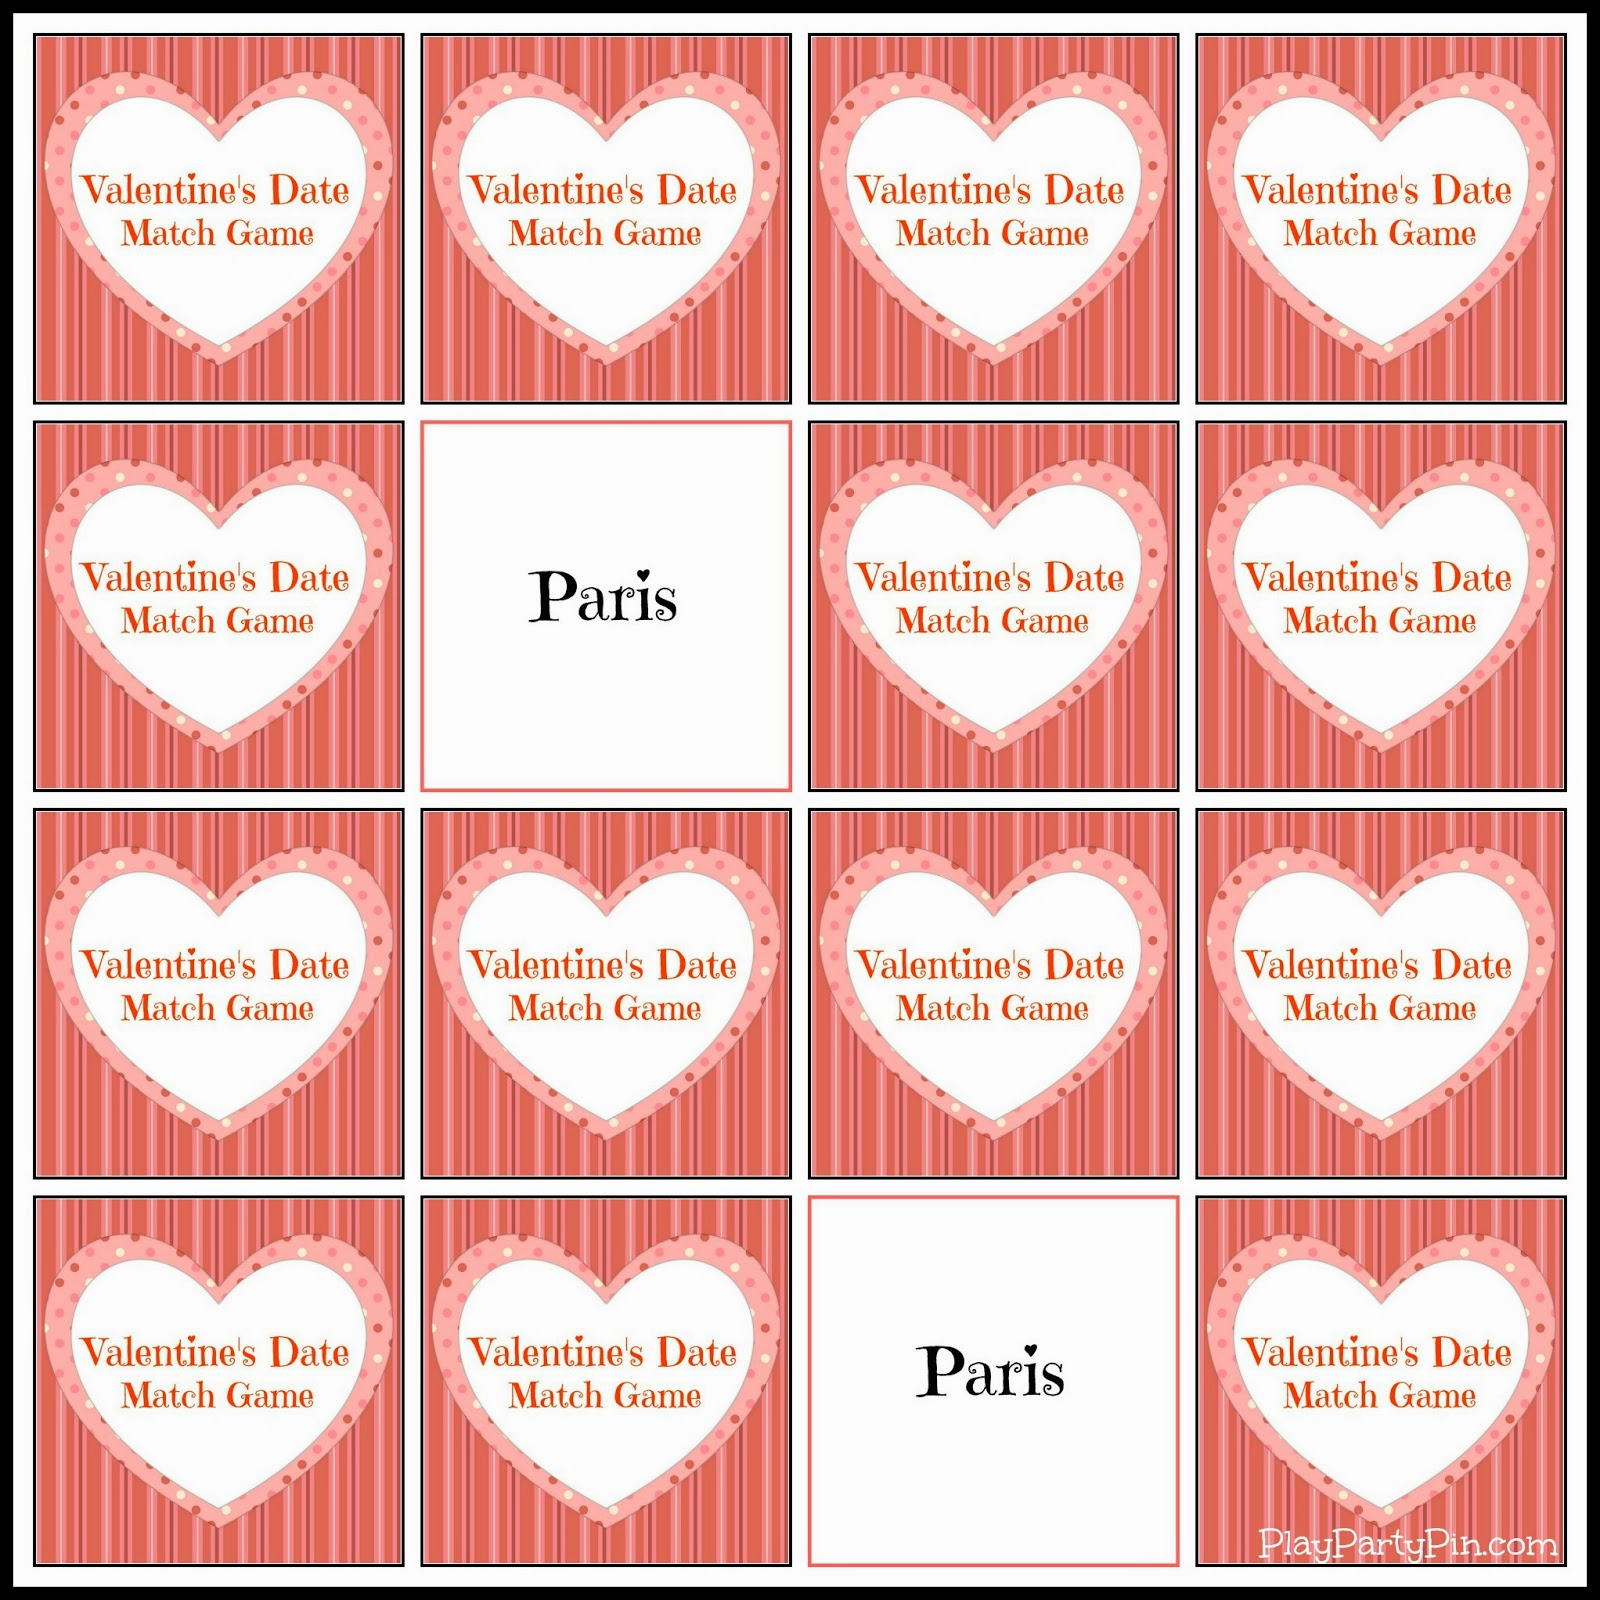 Valentines Gifts For Him Pinterest Creative valentine's day gift